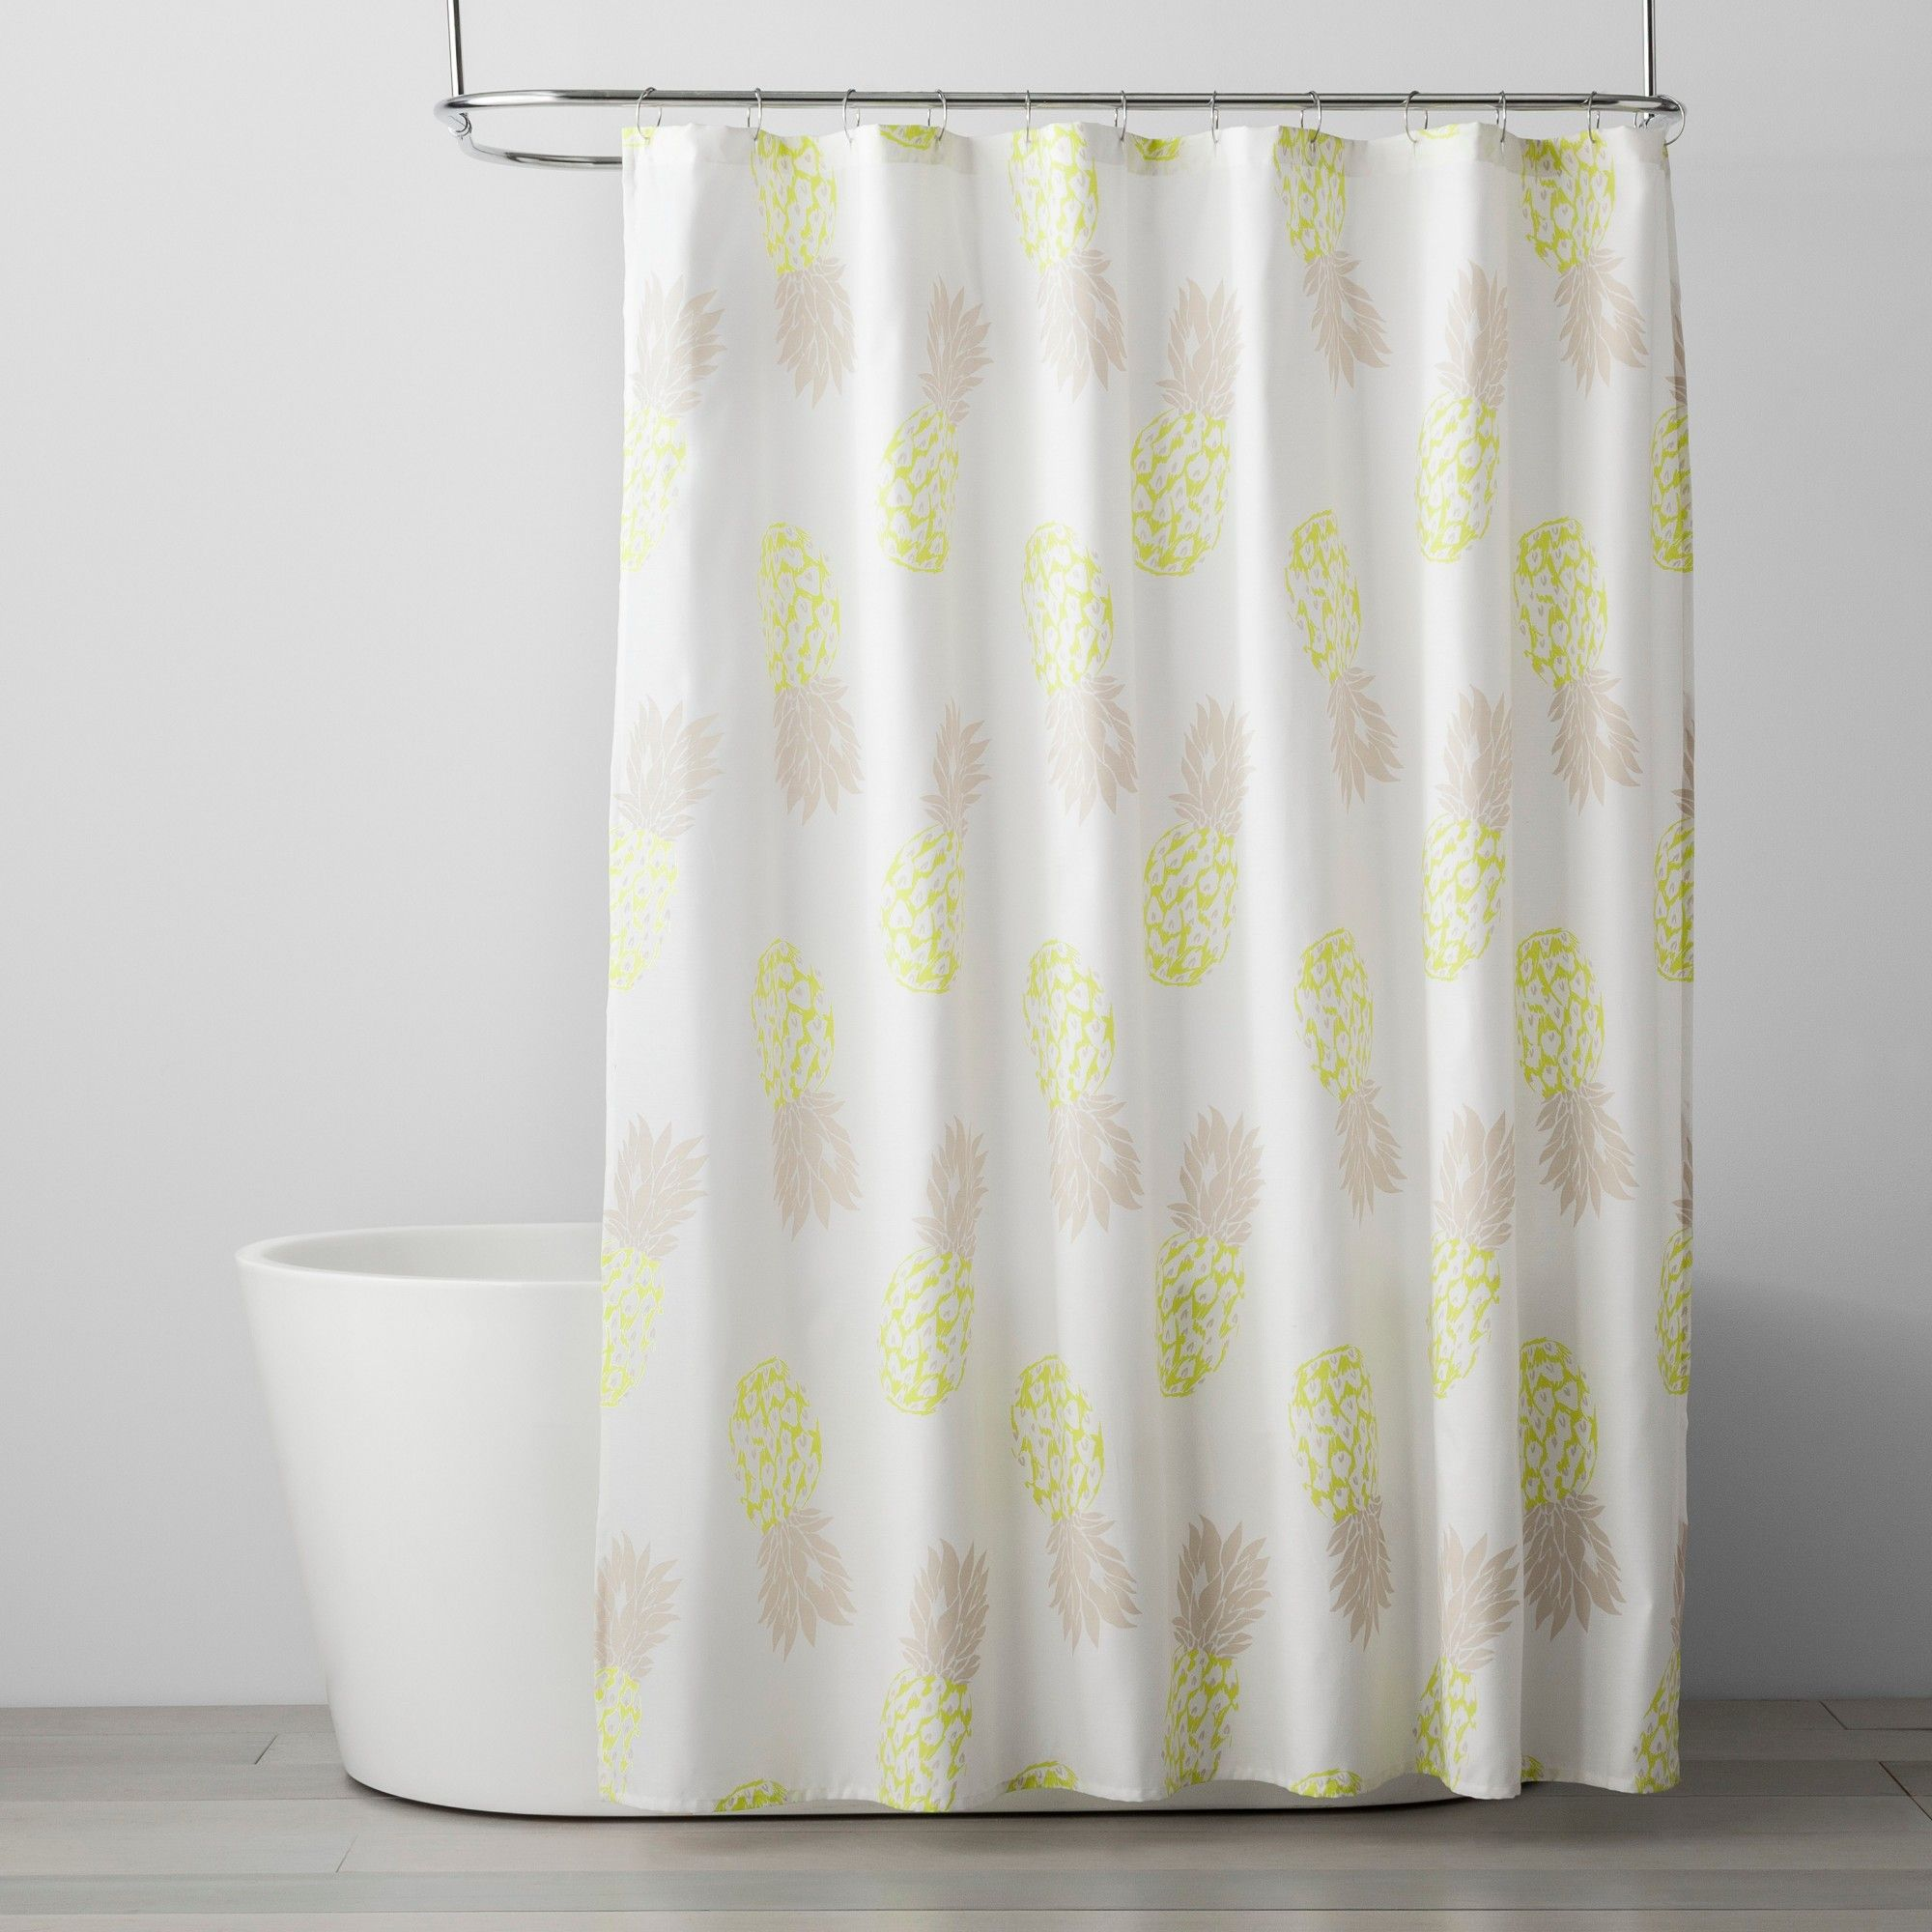 Fruit Shower Curtain Bleached Sand Room Essentials White